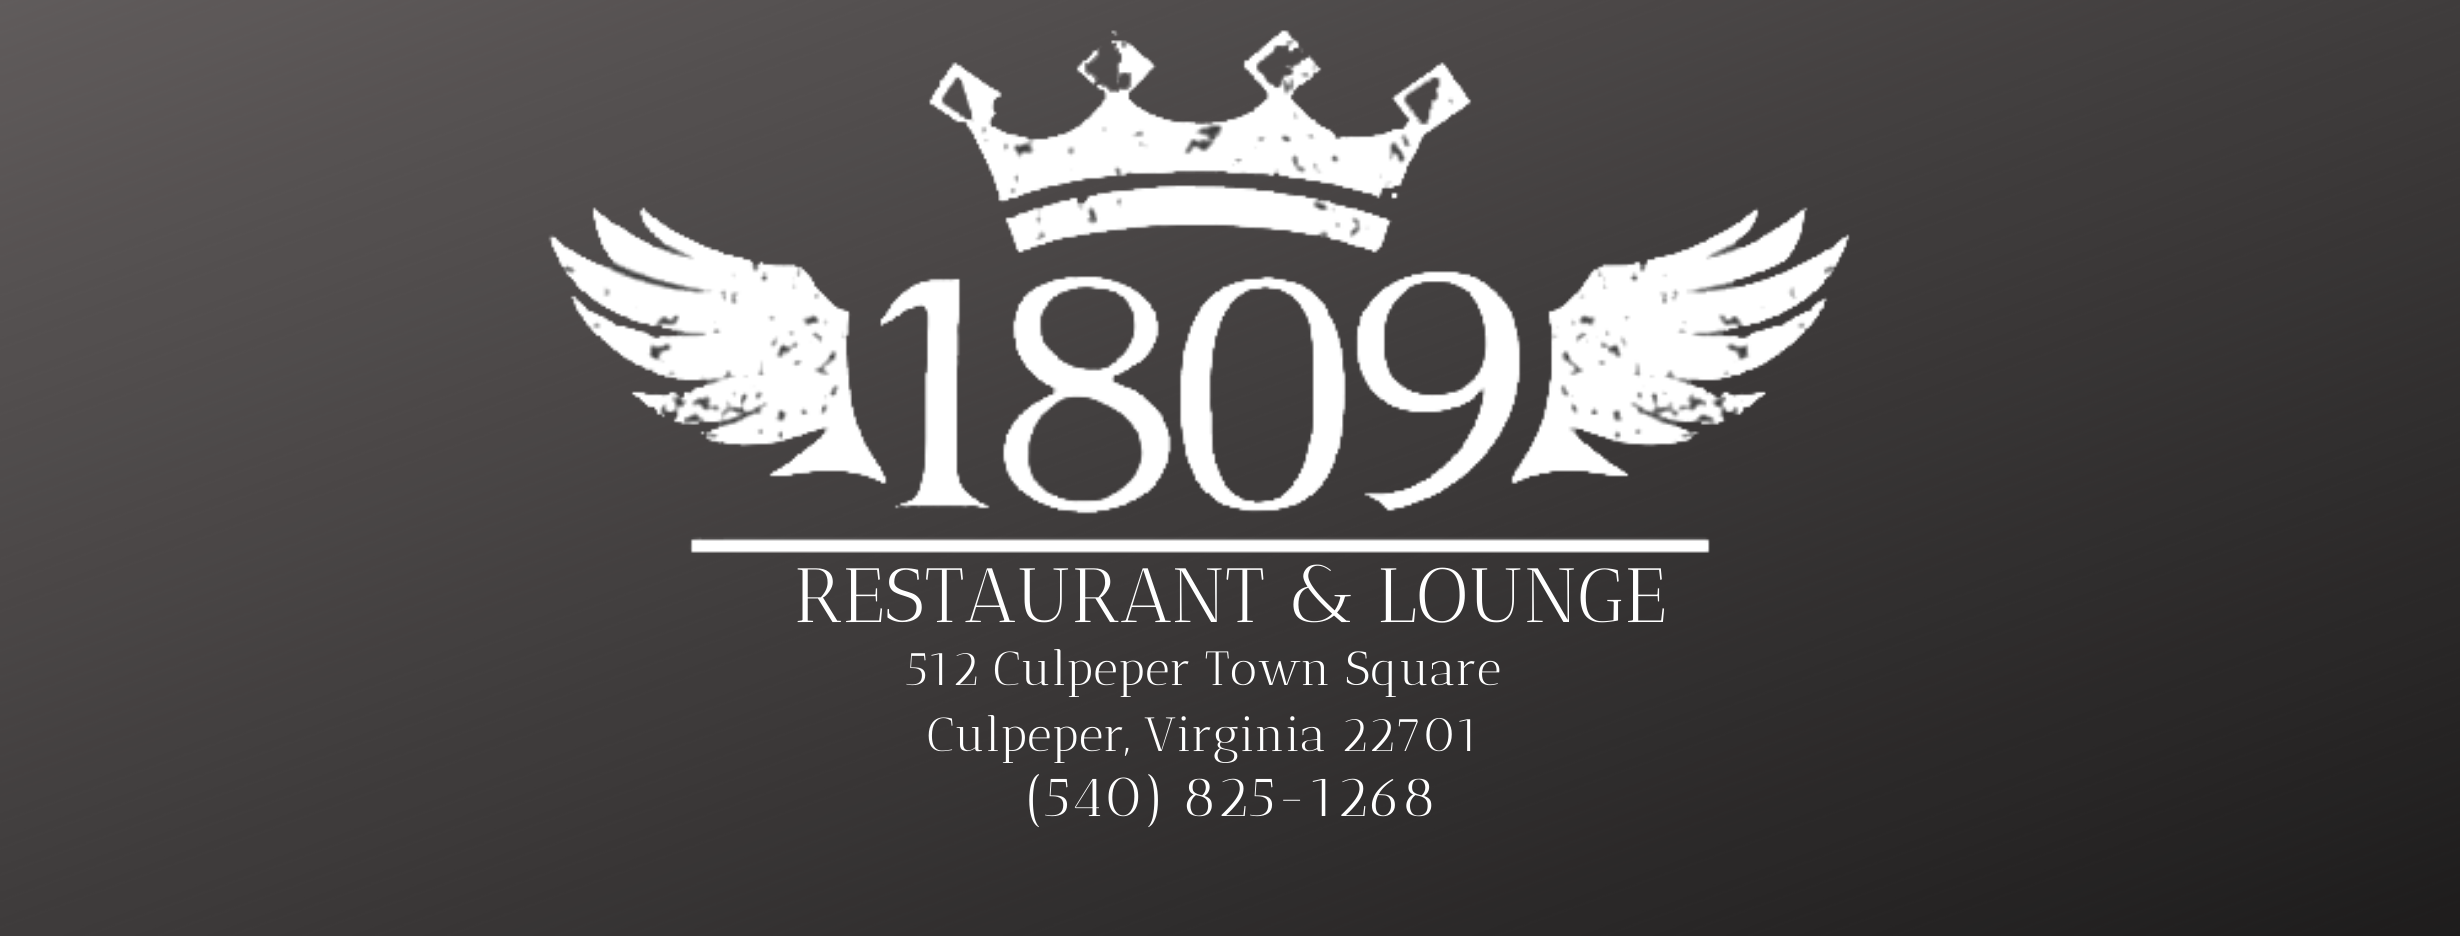 Photo of 1809-Restaurant-Lounge